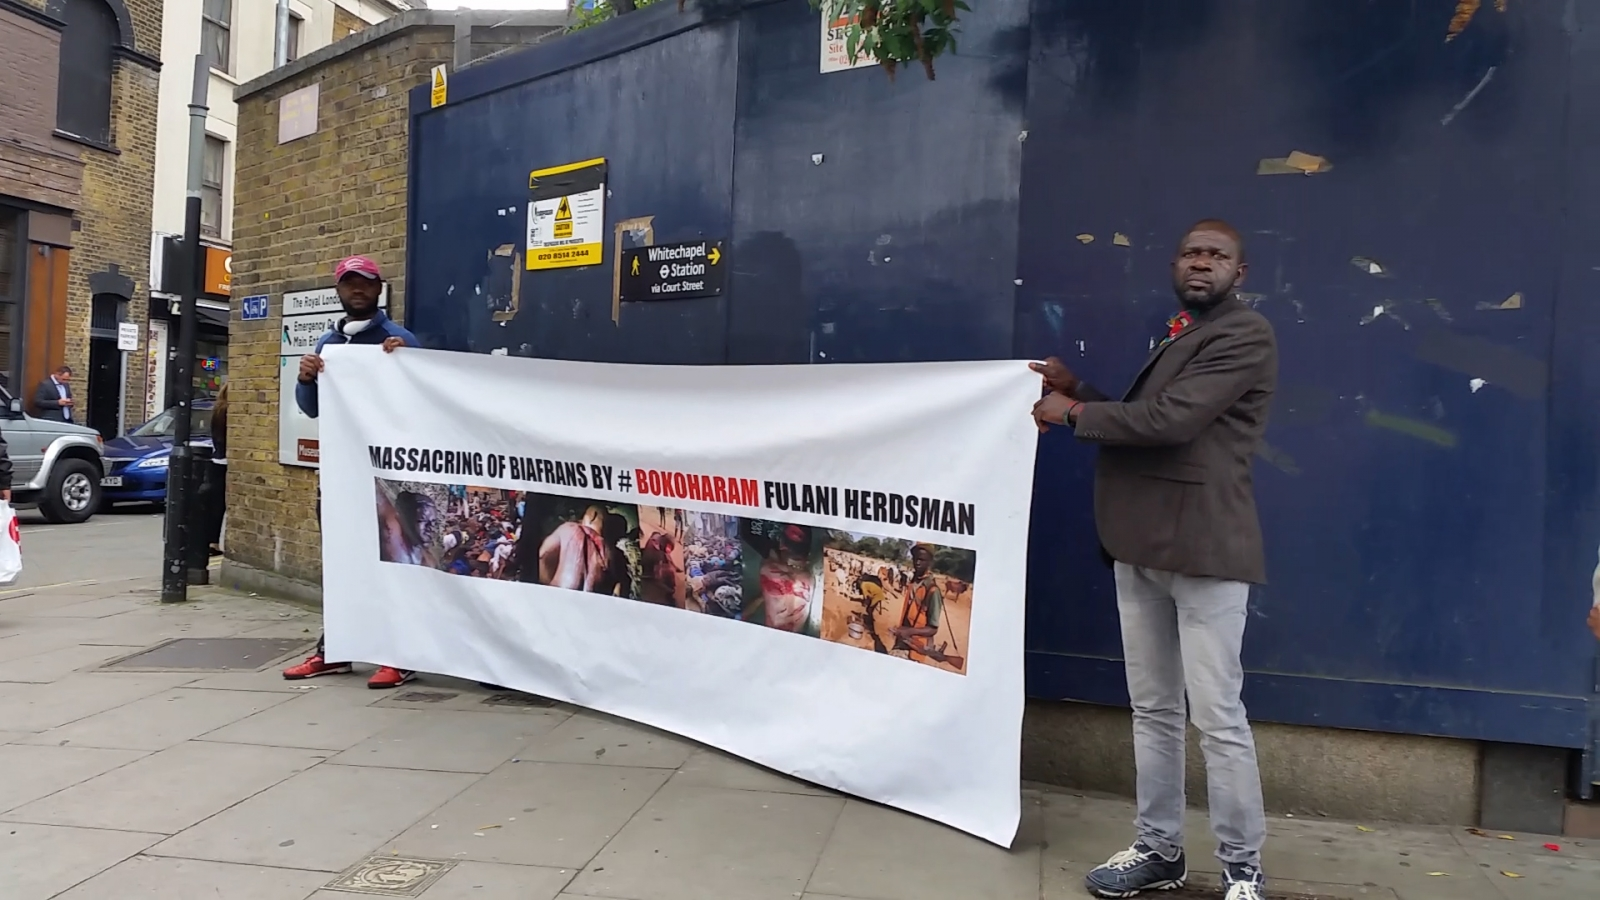 Pro-Biafrans stage silent protest in Whitechapel hoping to engage President Buhari